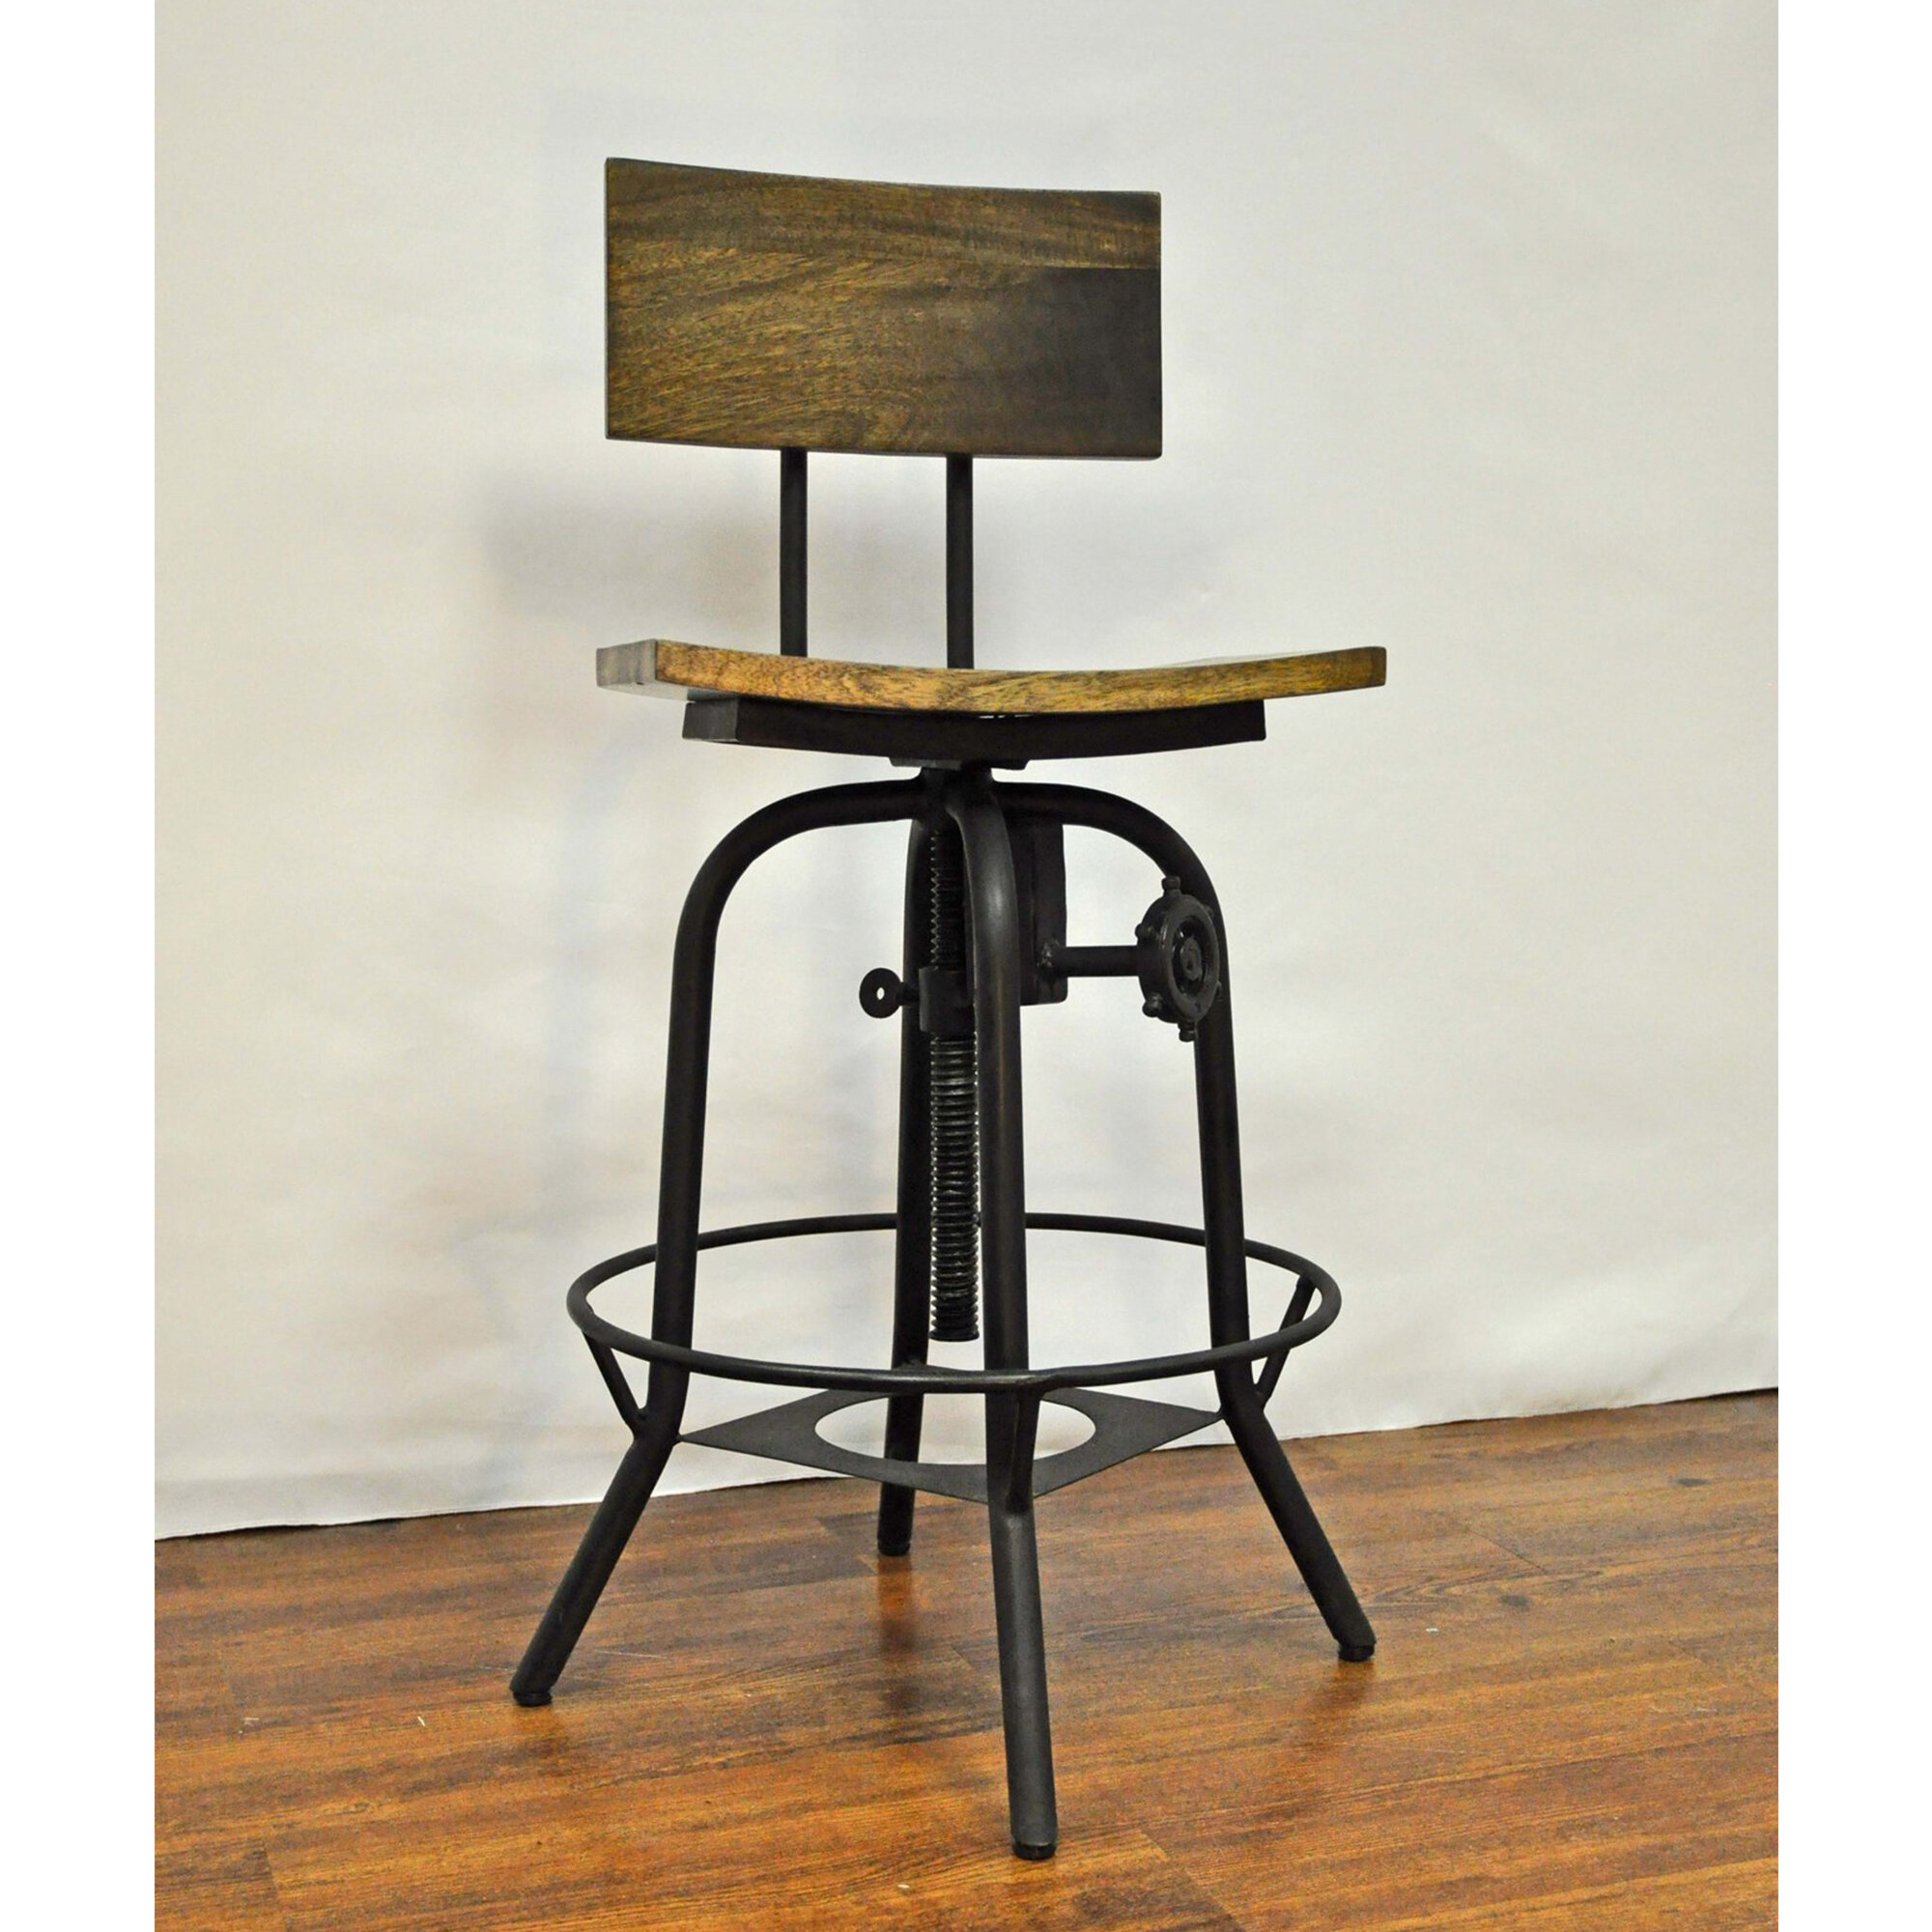 Cool Mott Street Adjustable Swivel Bar Stool Machost Co Dining Chair Design Ideas Machostcouk